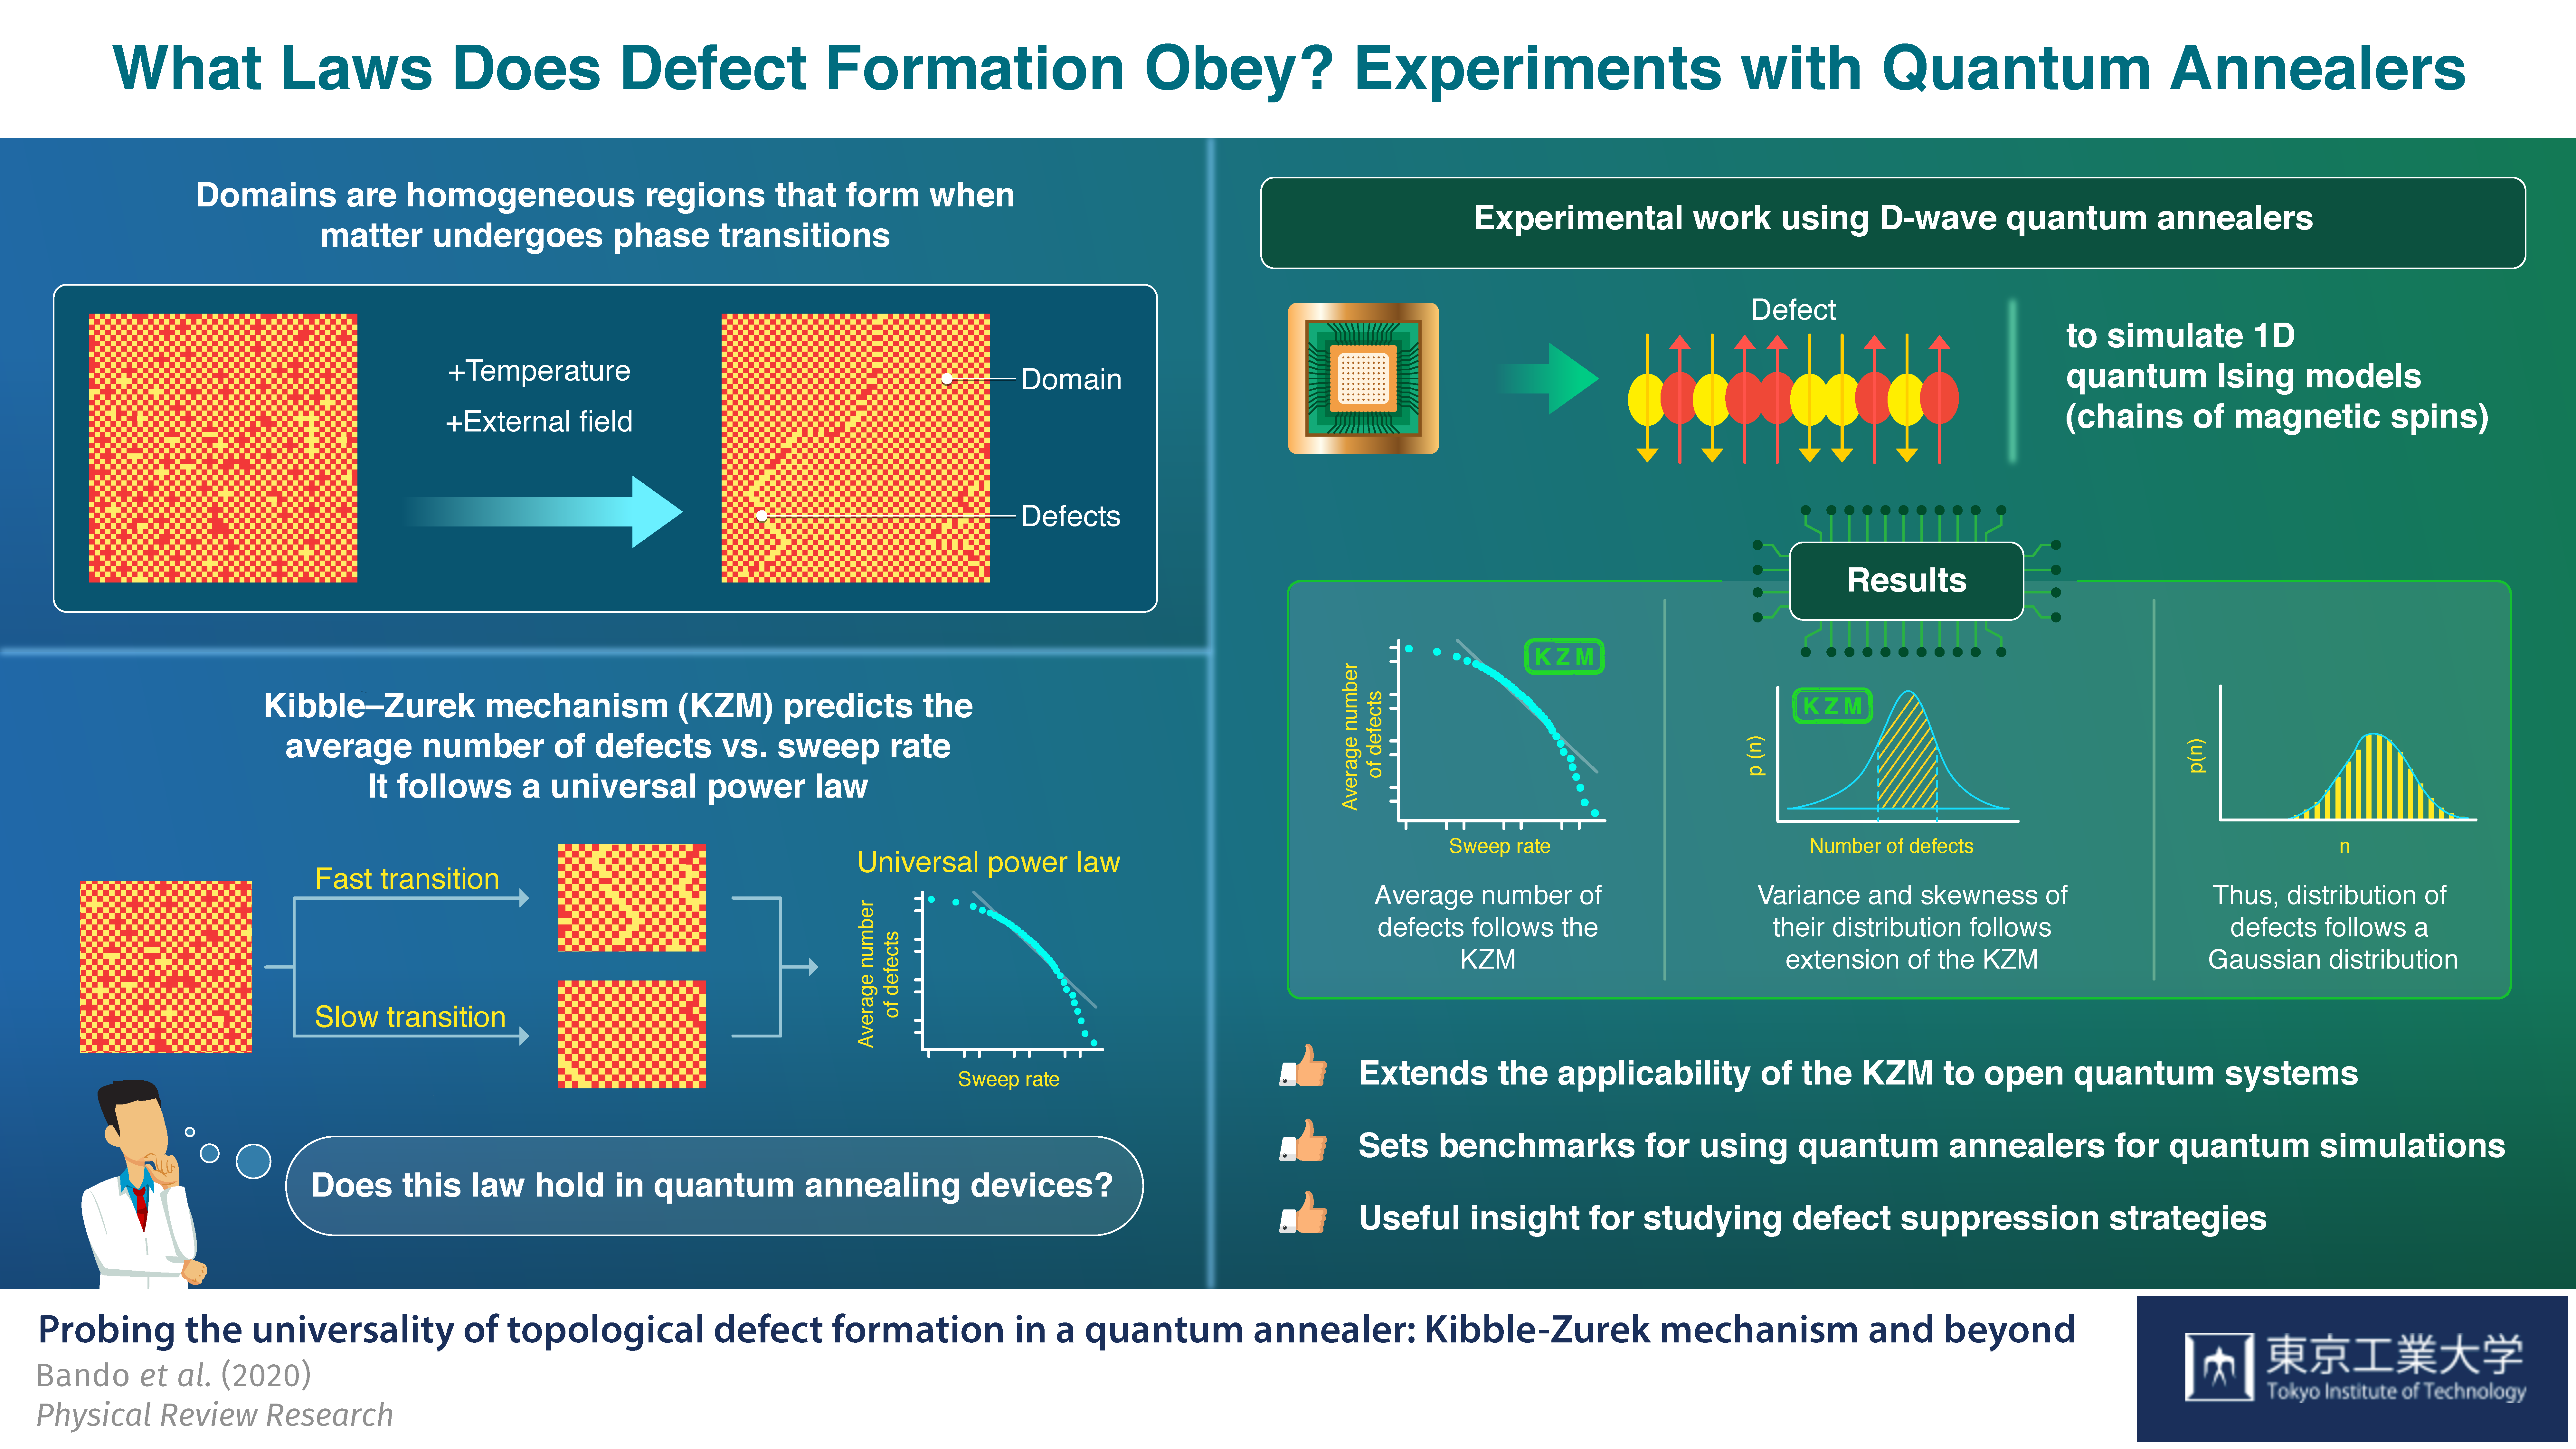 Schematic Illustration of Experimental Work Using D-Wave Quantum Annealers